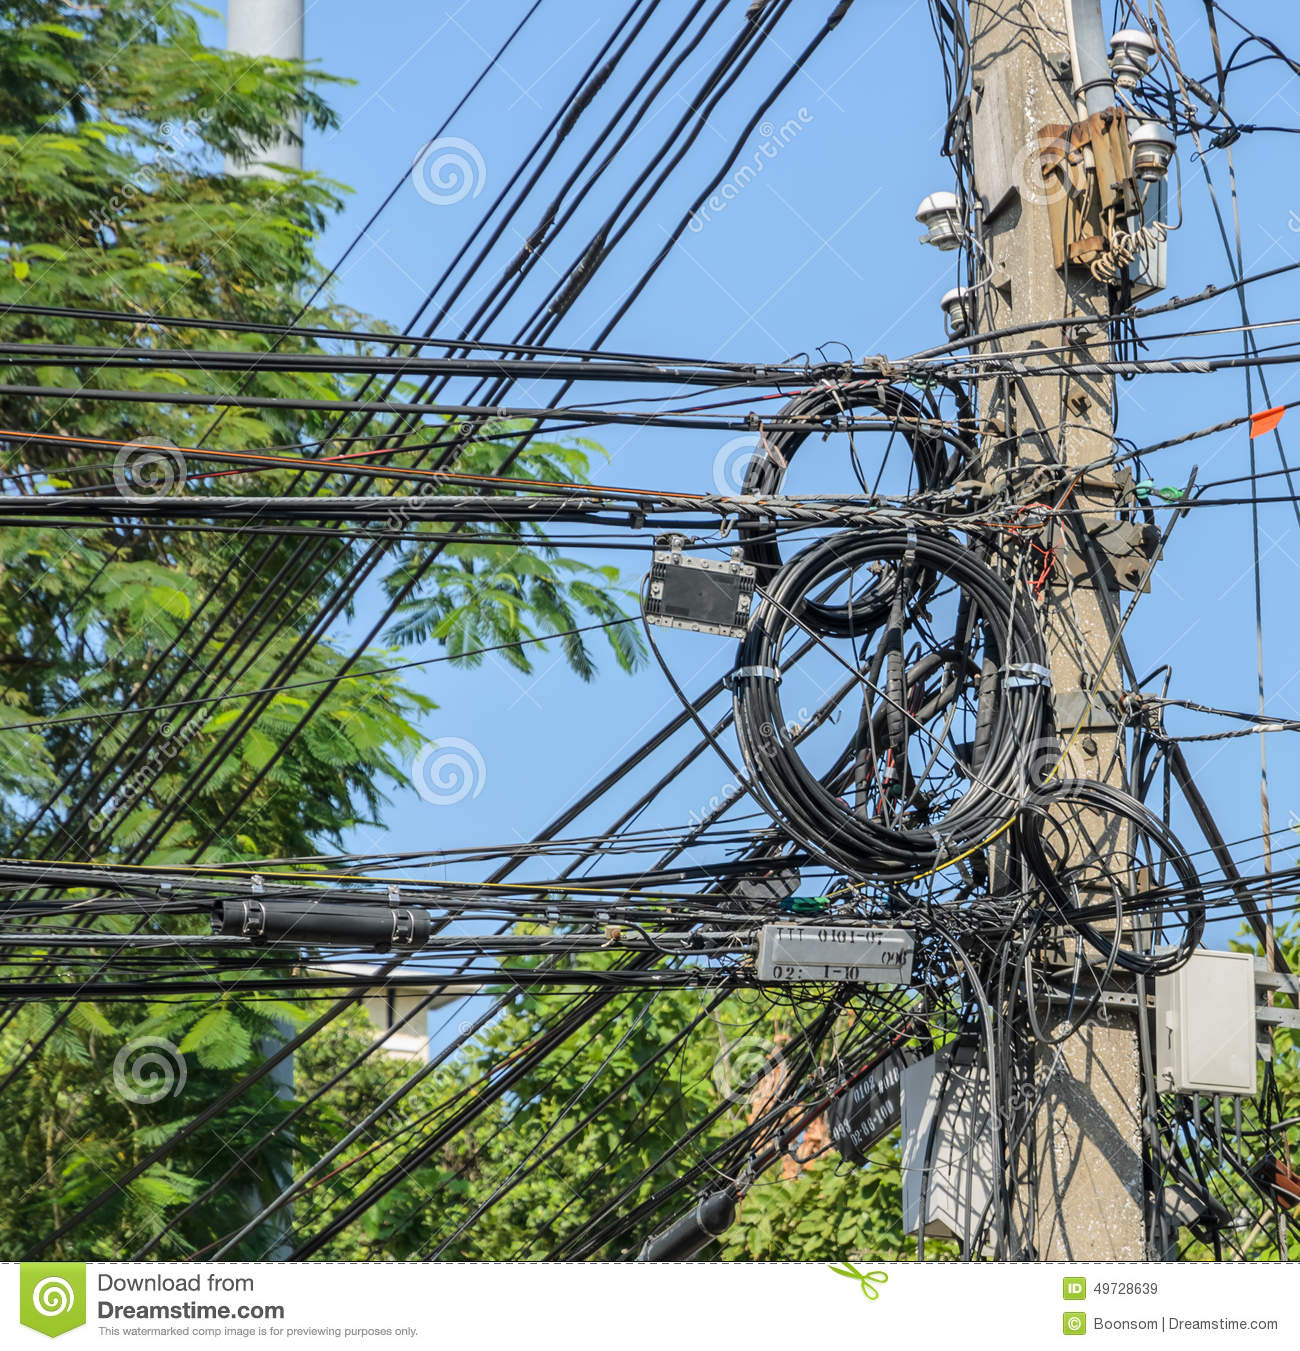 Messy Electric Cables On Pole Stock Image - Image: 49728639